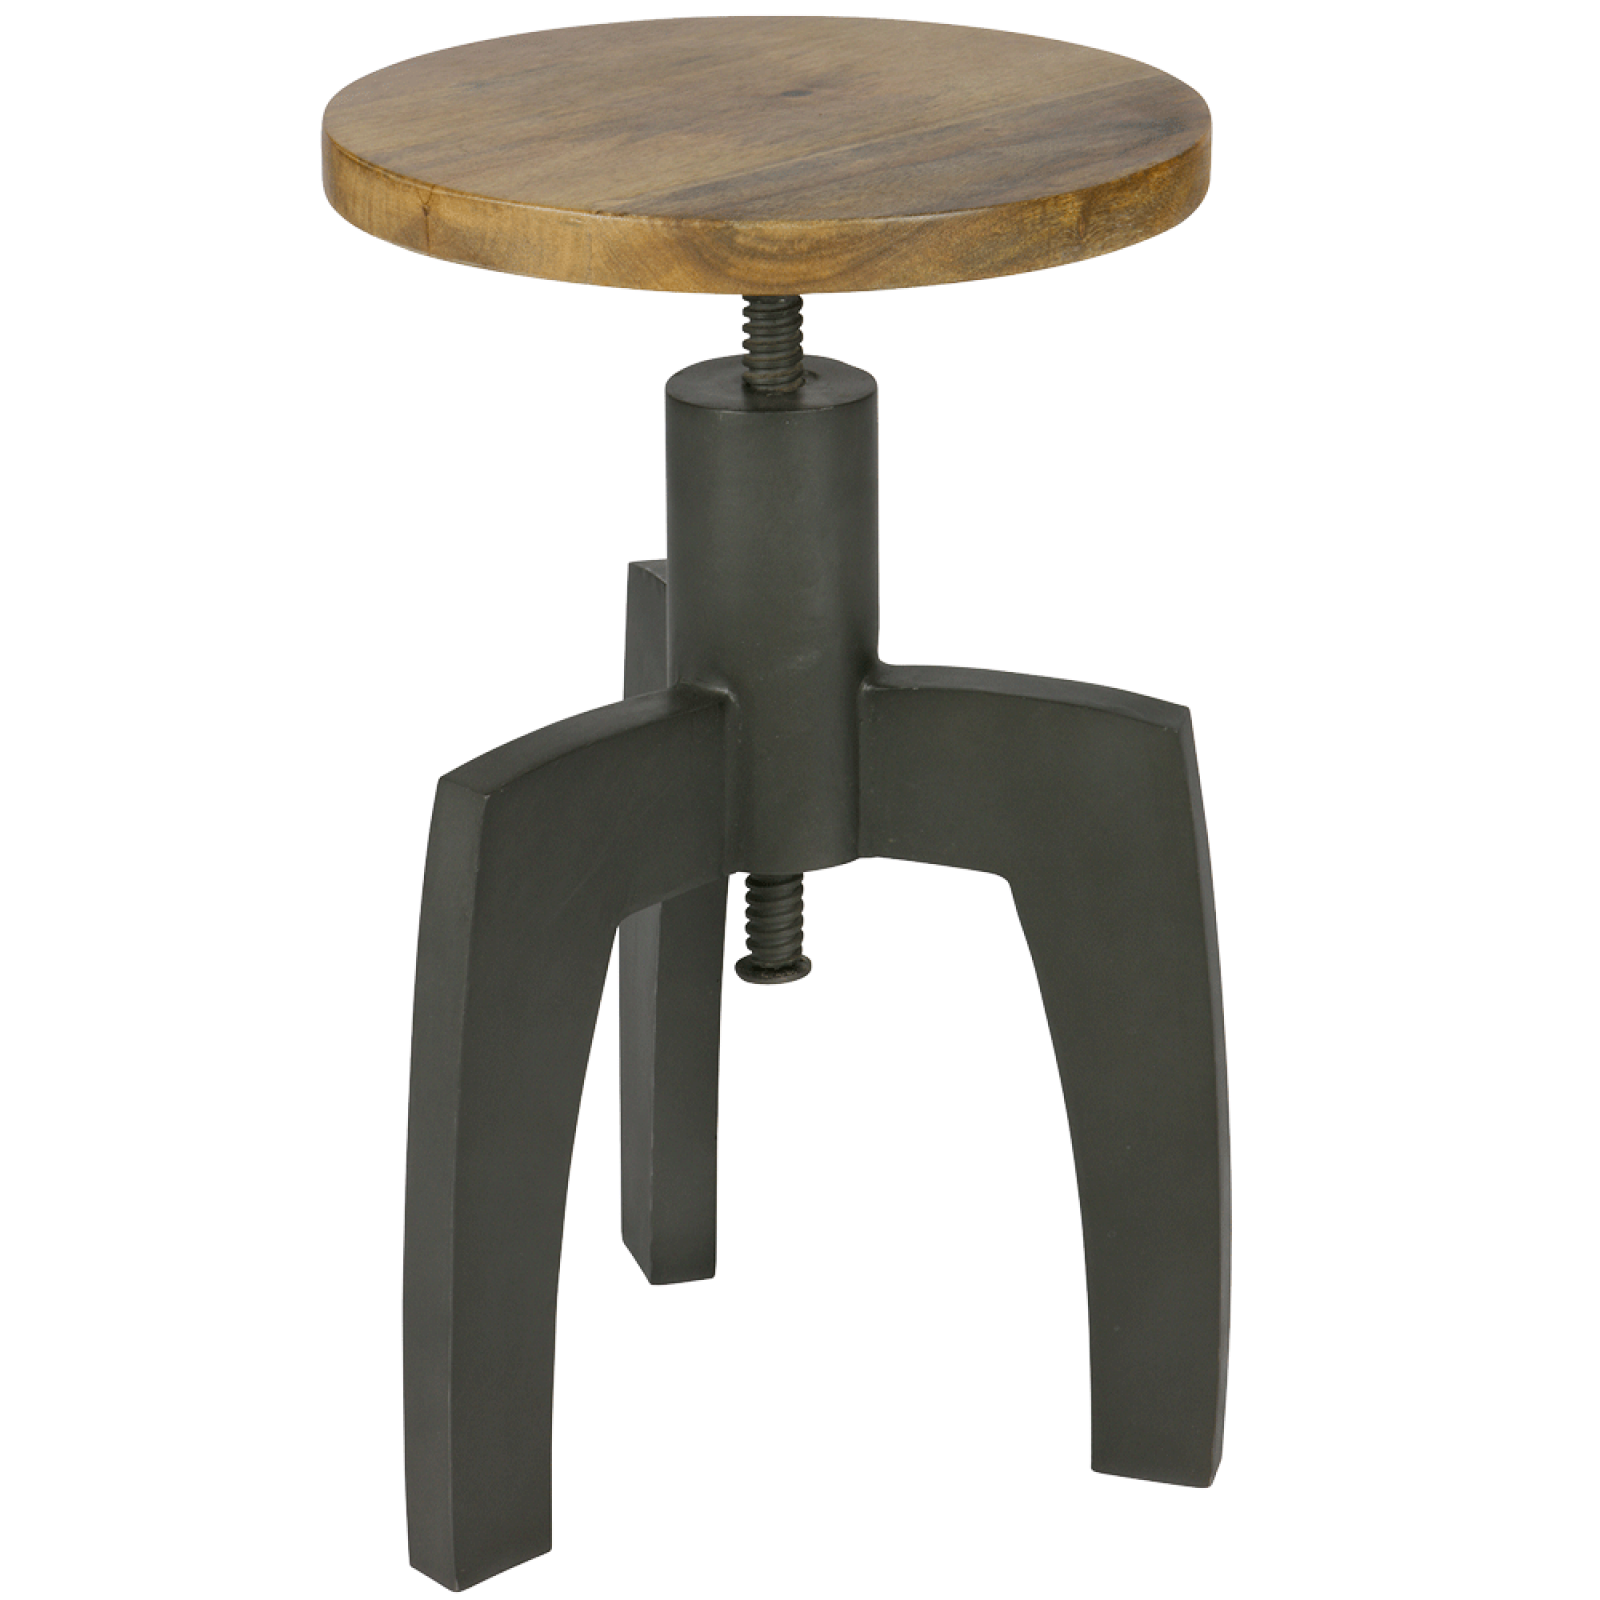 Adjustable Space stool Wood seat Black metal